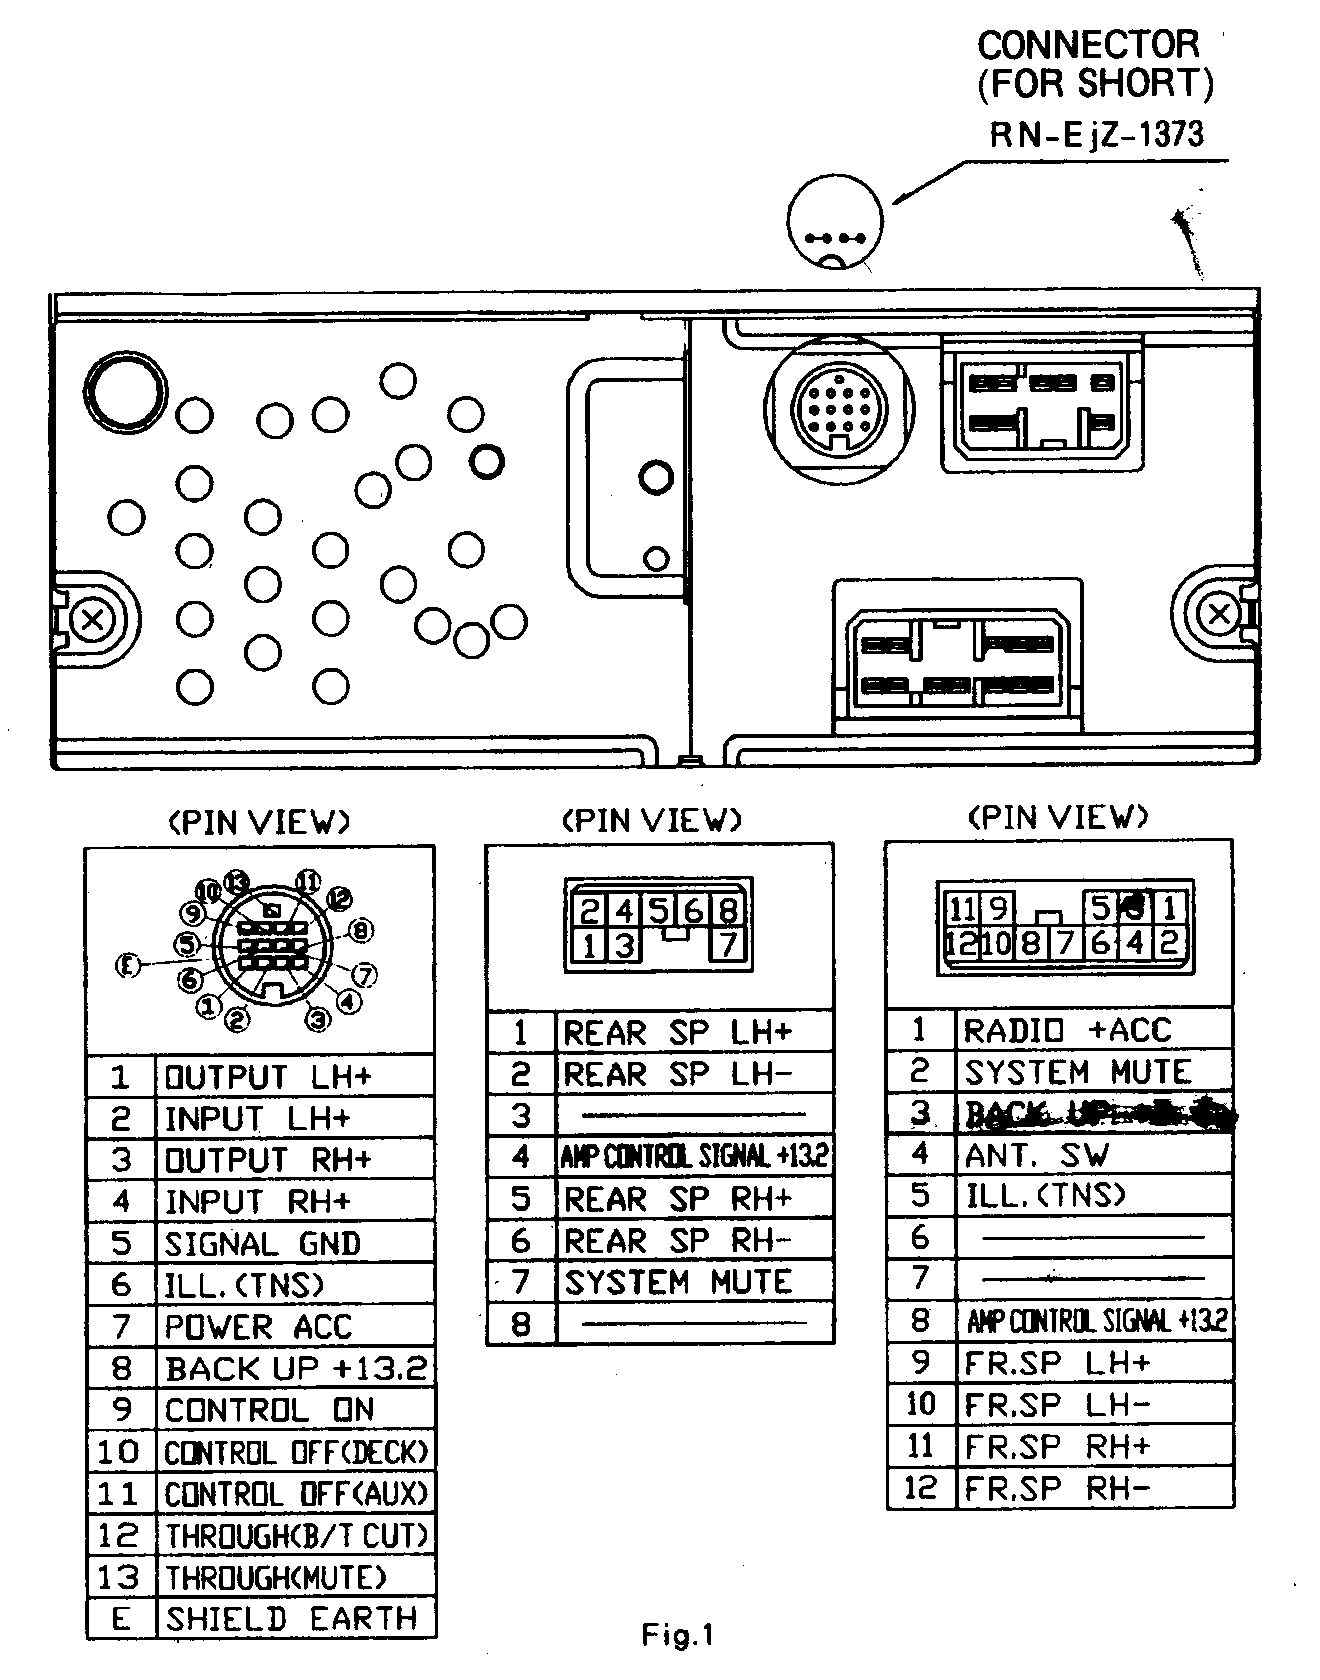 Mazda Car Radio Wiring Connector: Clarion Car Radio Wiring Diagram At Ww2.ww.